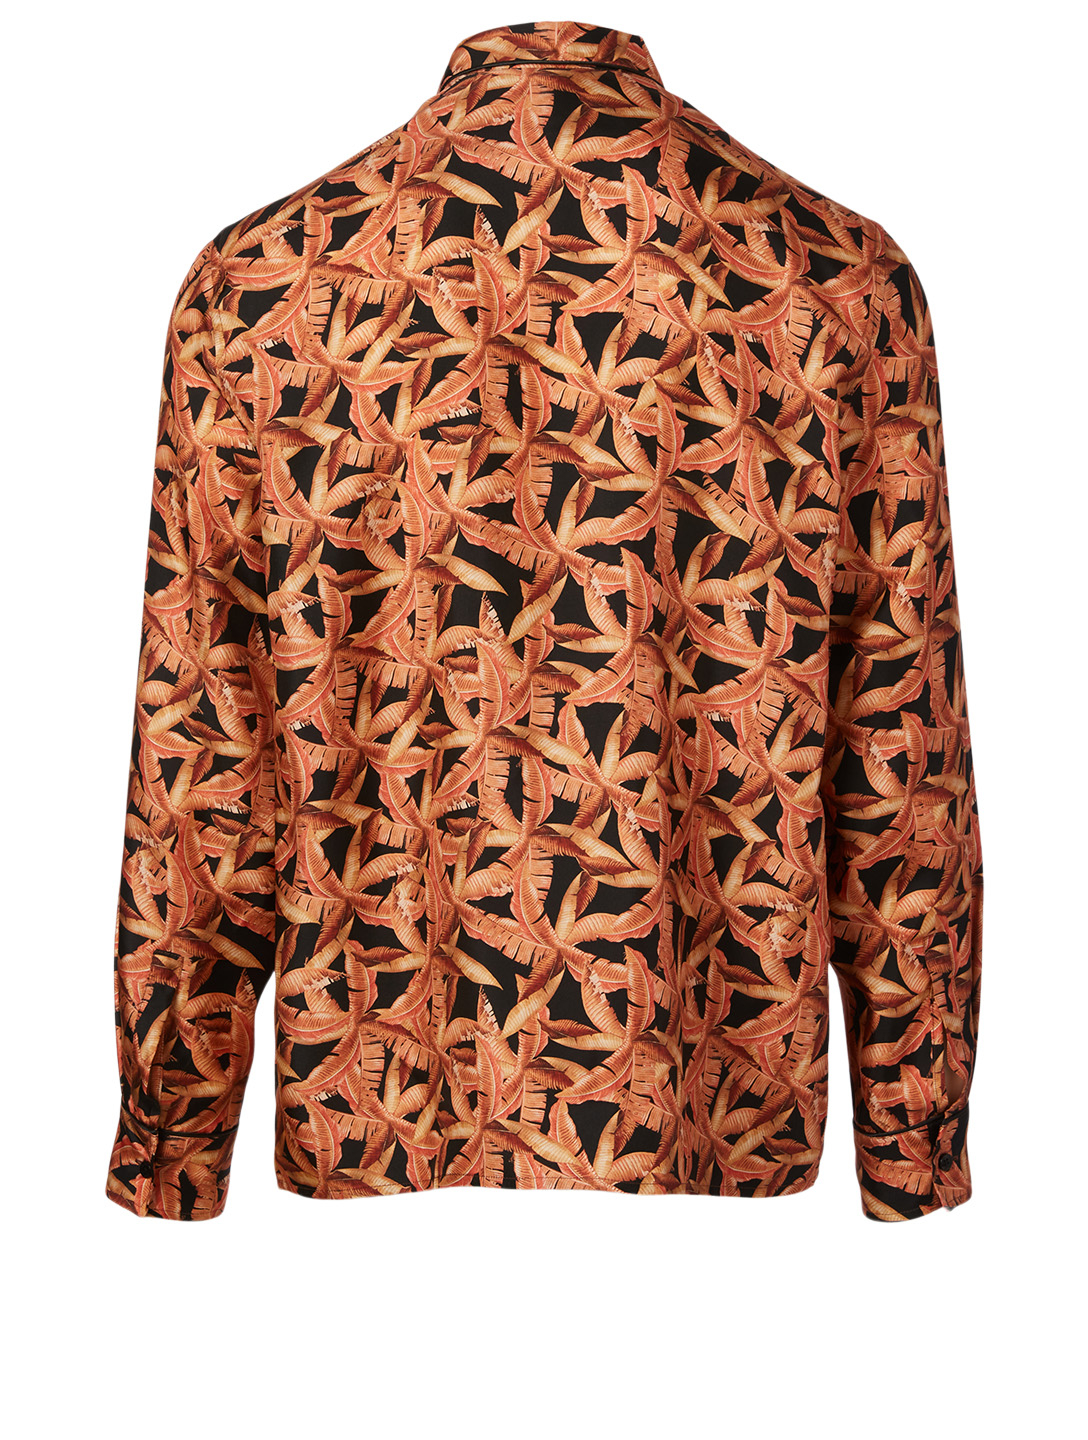 AMIRI Silk Pajama Shirt In Banana Leaves Print Men's Multi